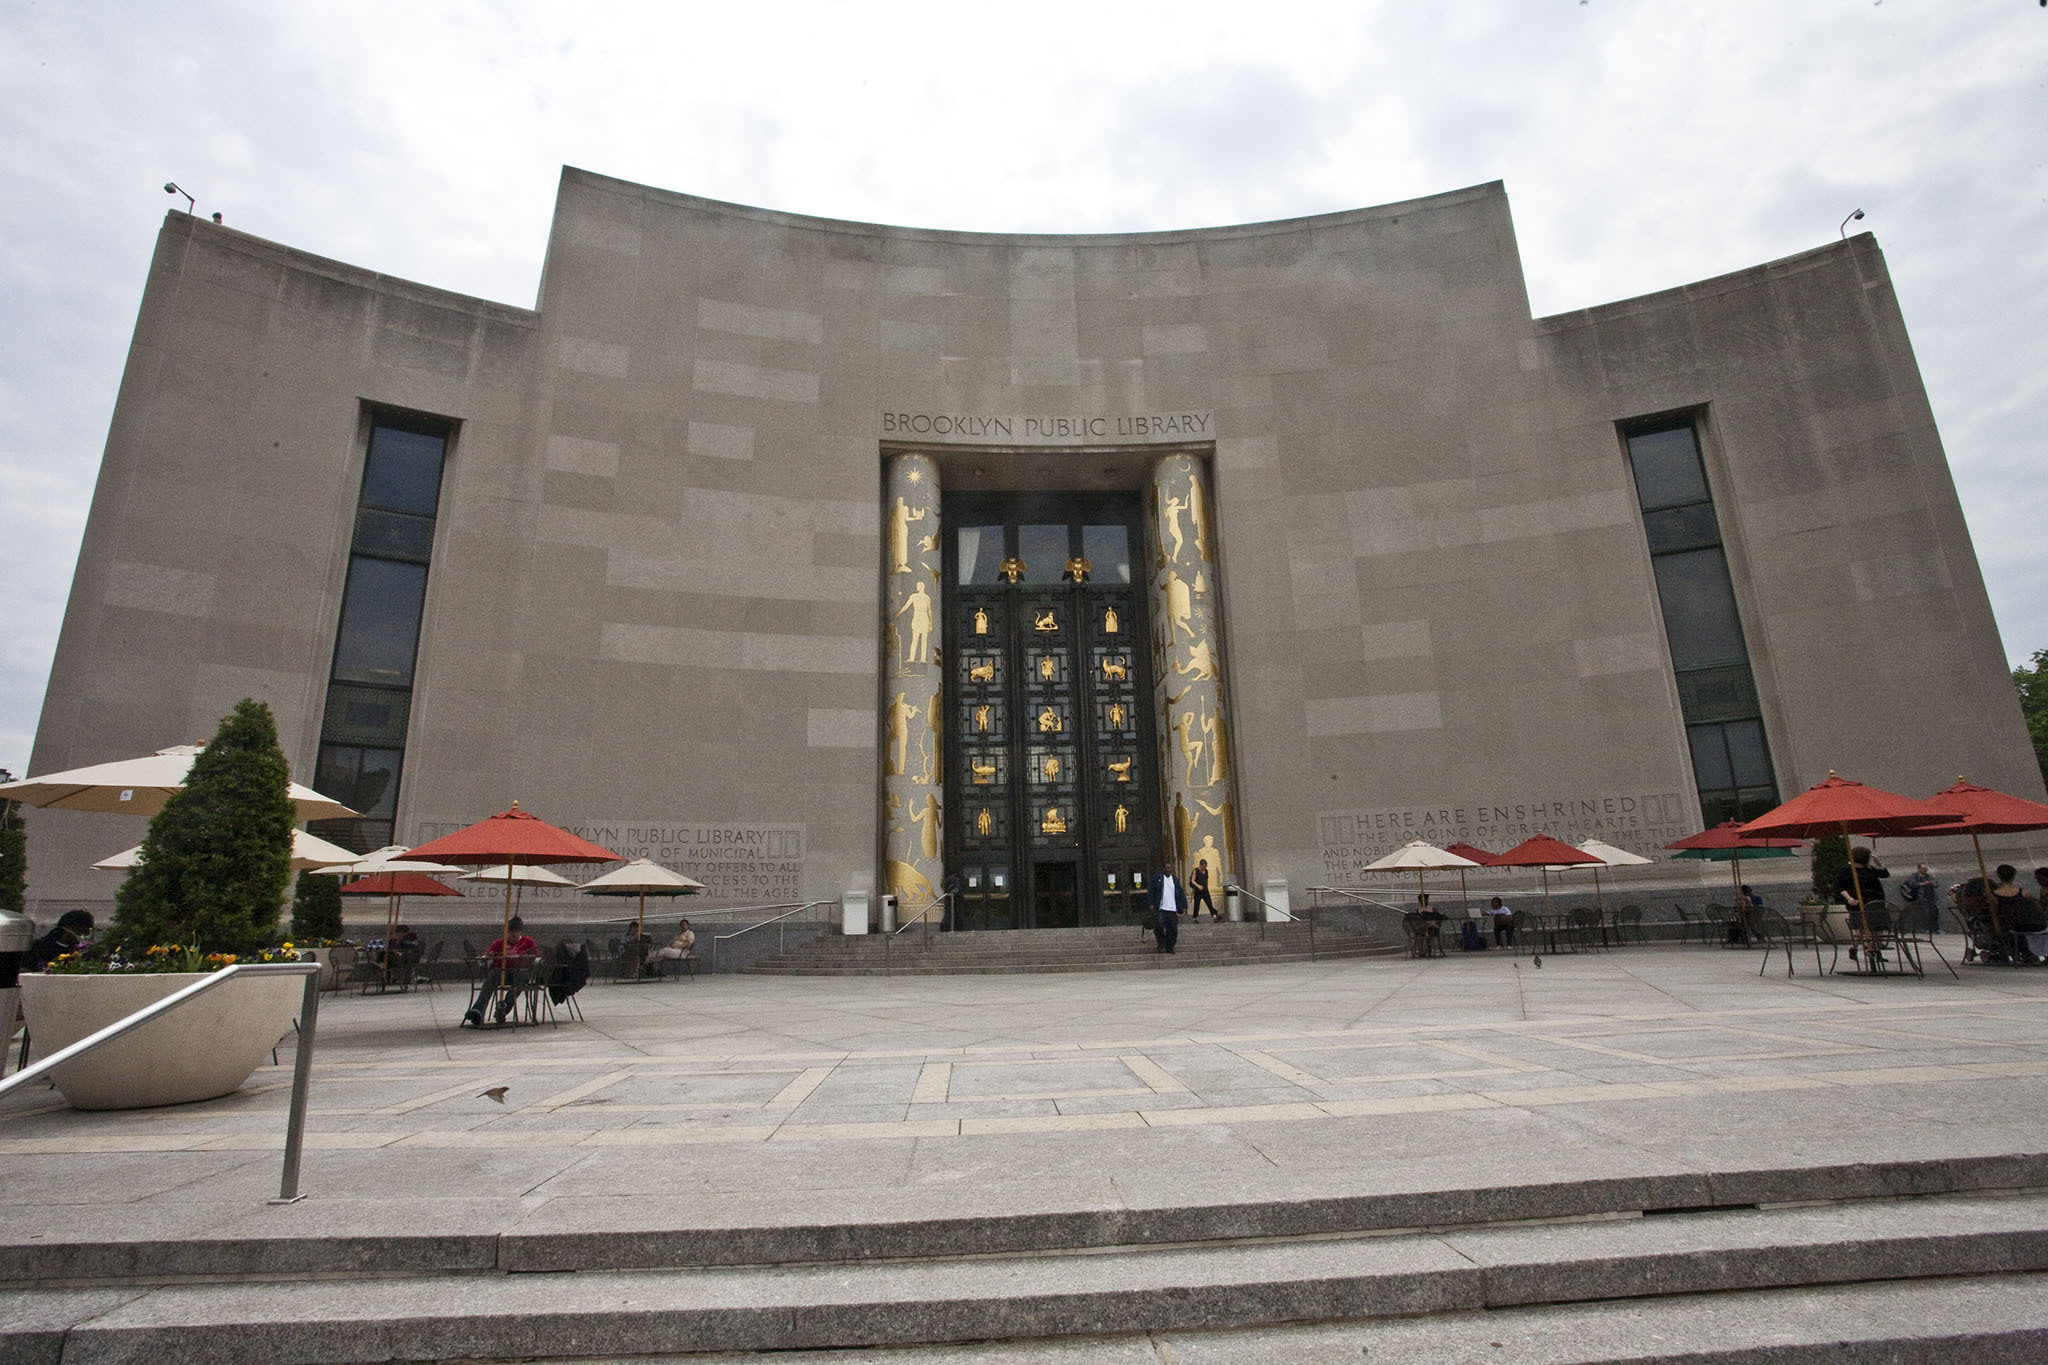 Brooklyn Public Library, Central Branch